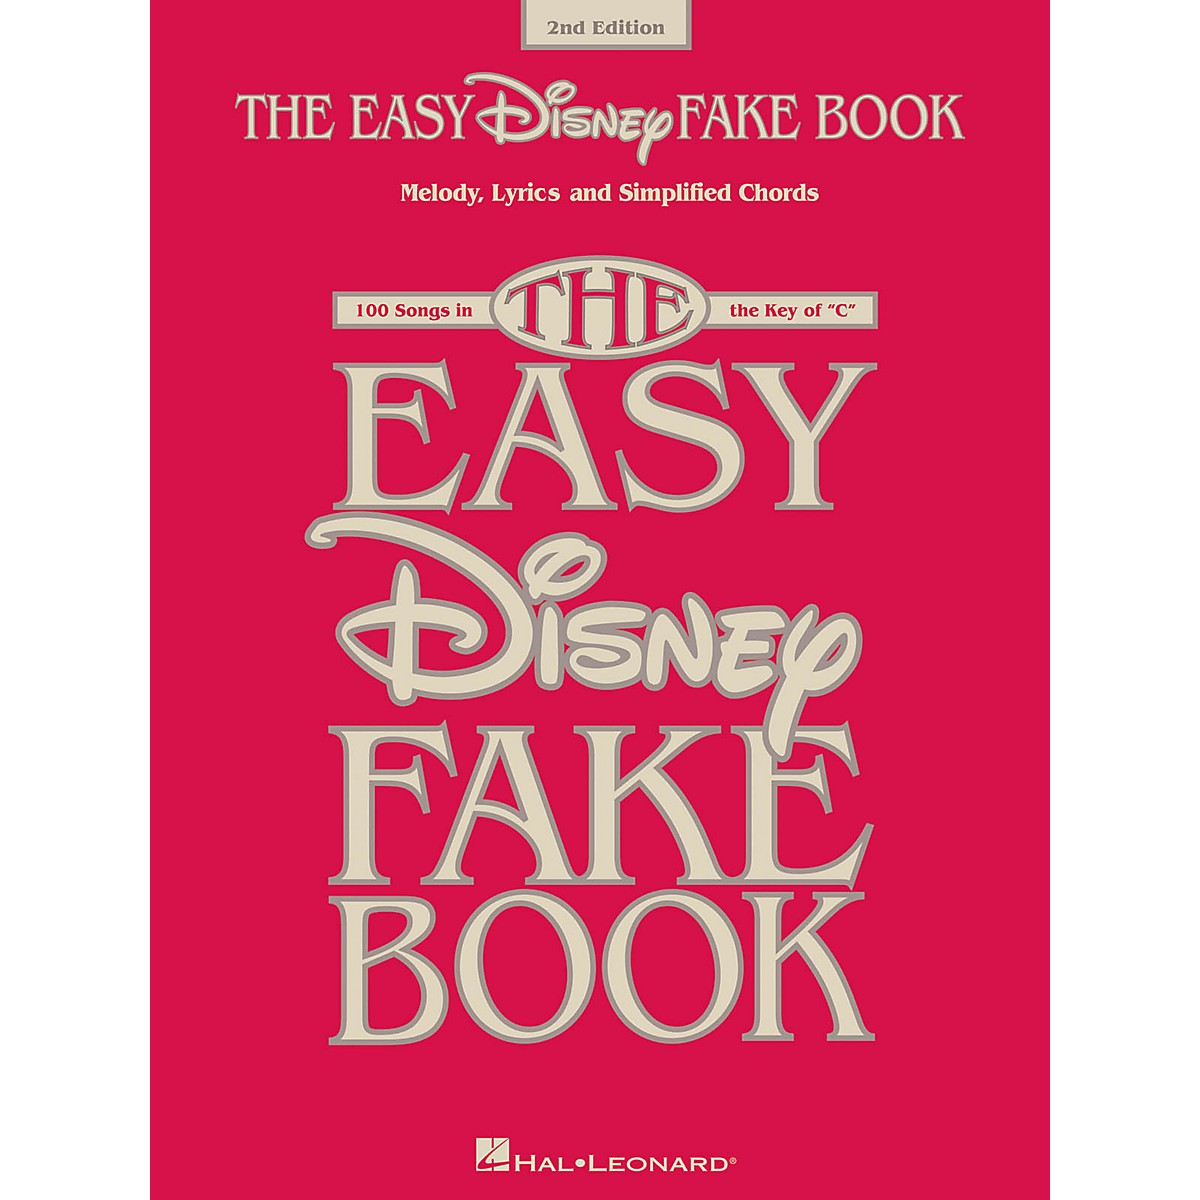 Hal Leonard The Easy Disney Fake Book - 2nd Edition (100 Songs in the Key of C)